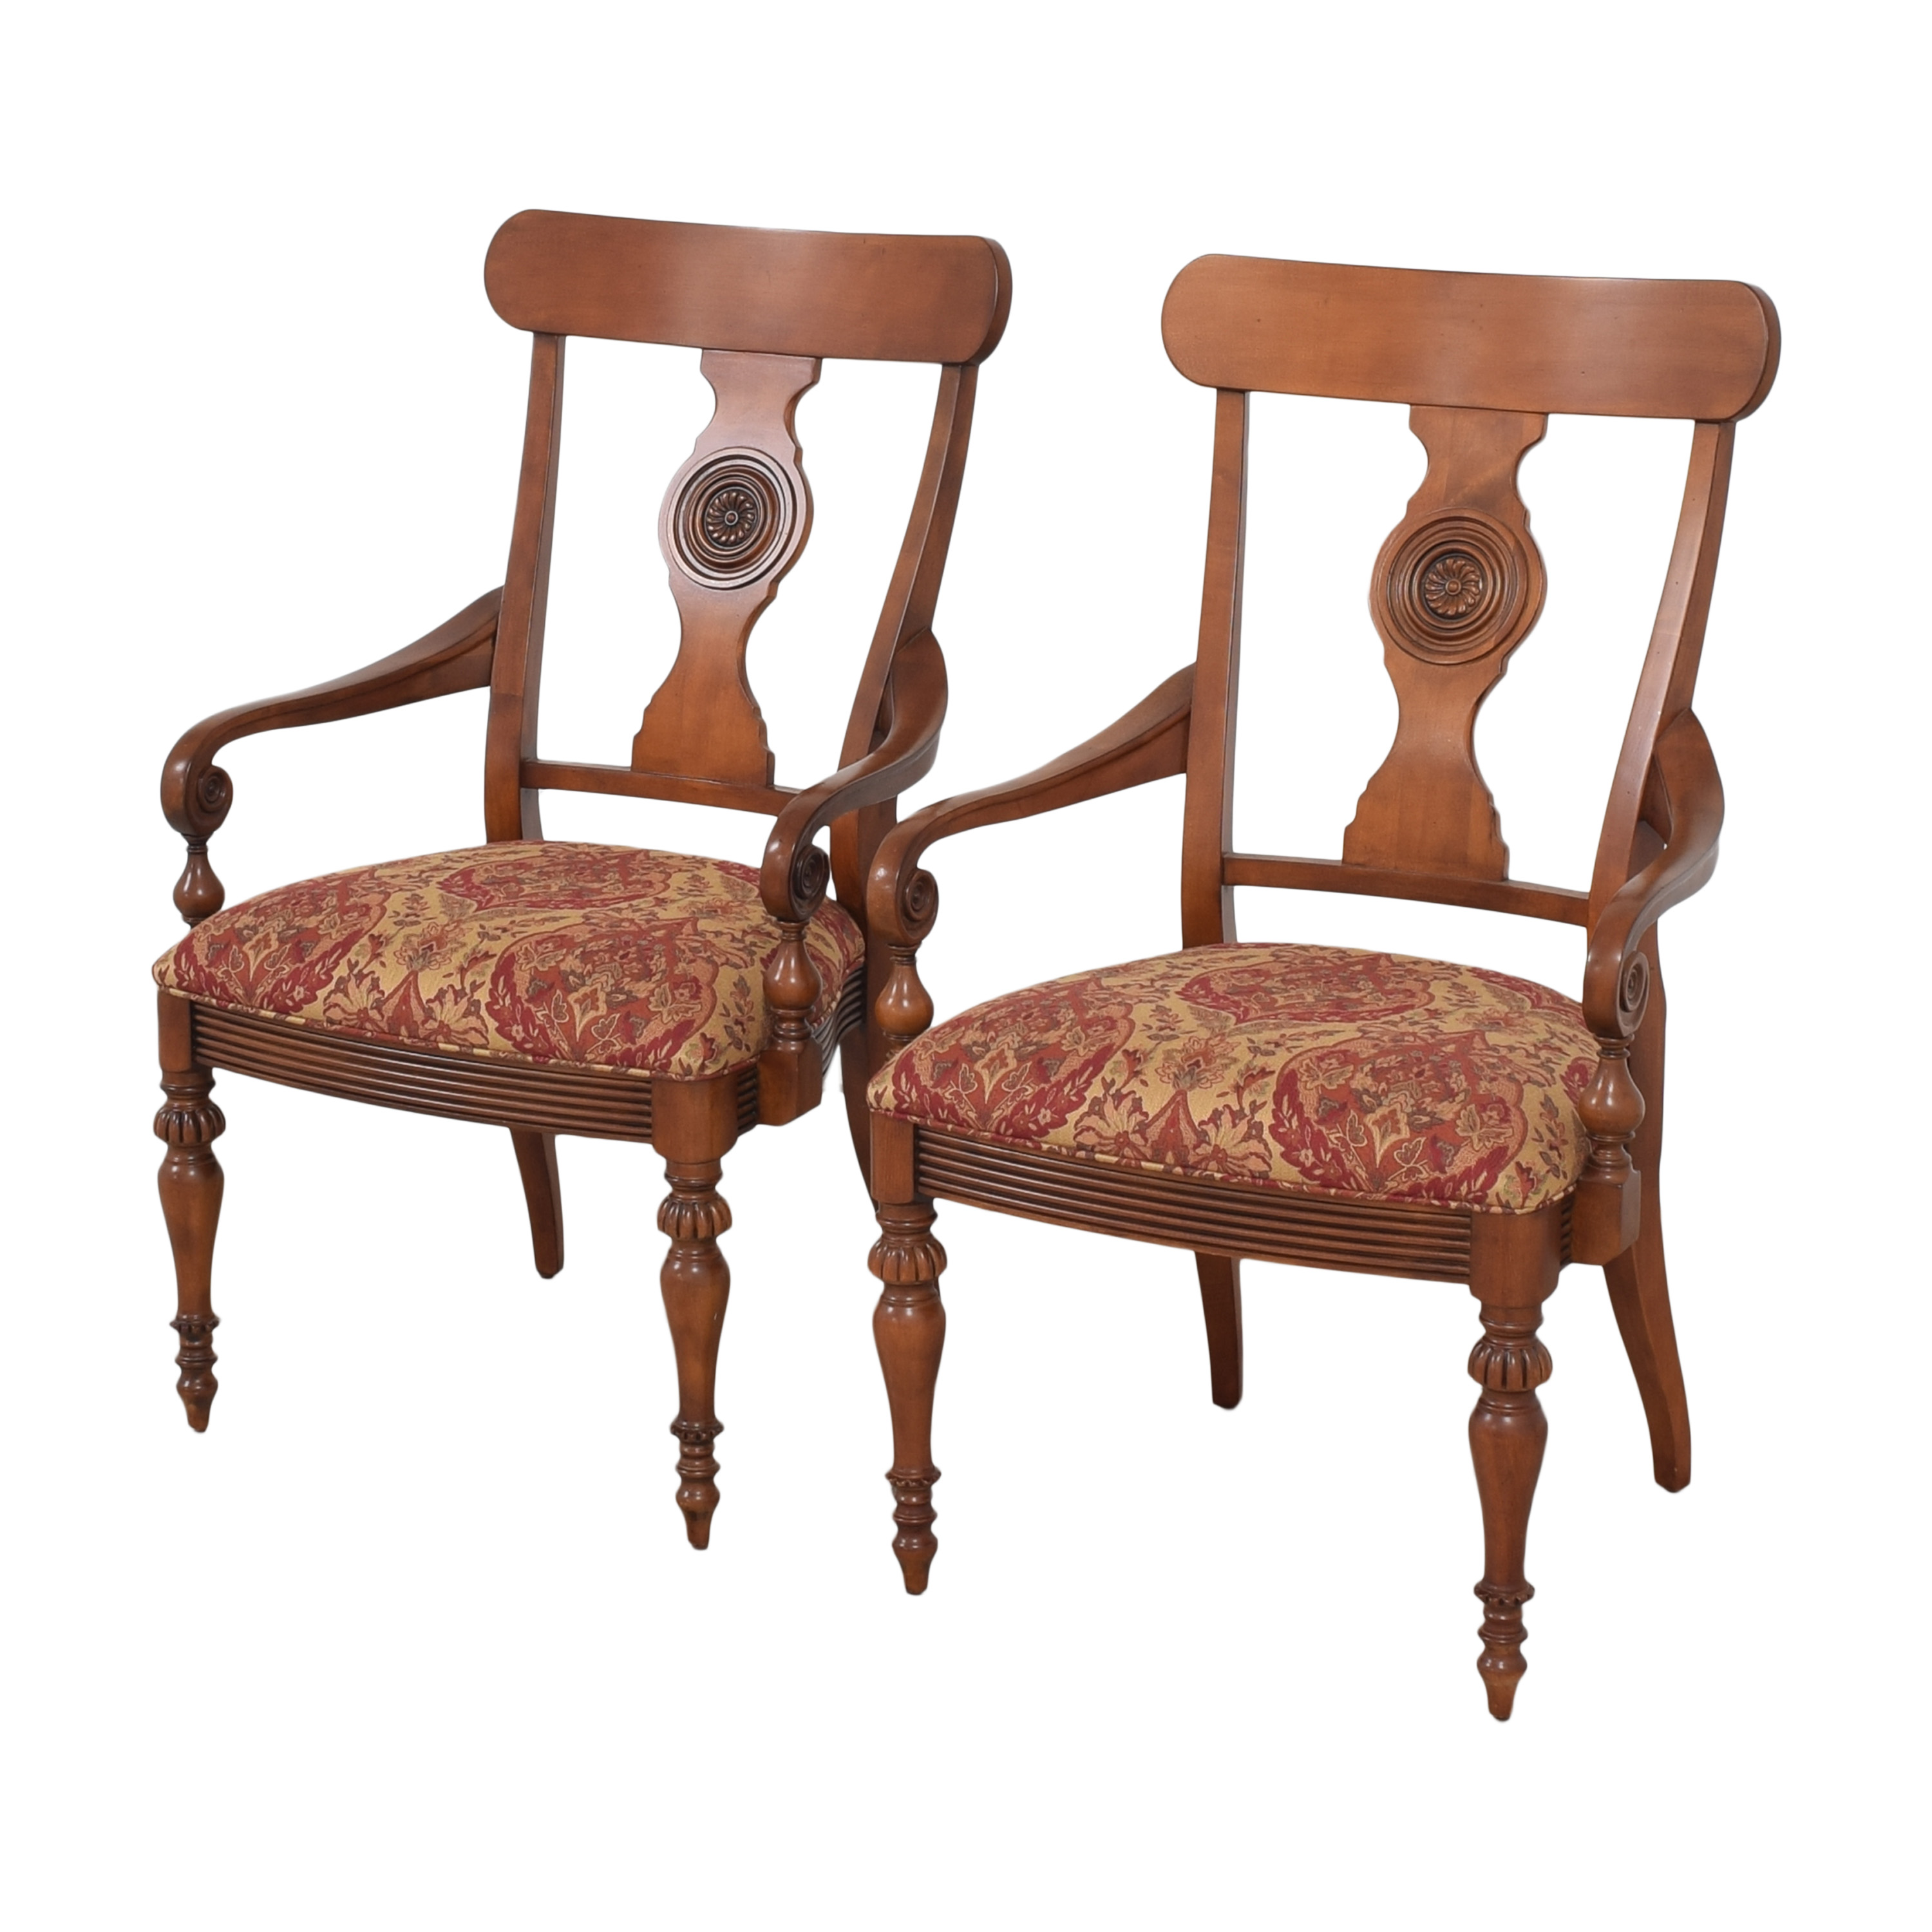 Ethan Allen Ethan Allen British Classics Dining Arm Chairs dimensions